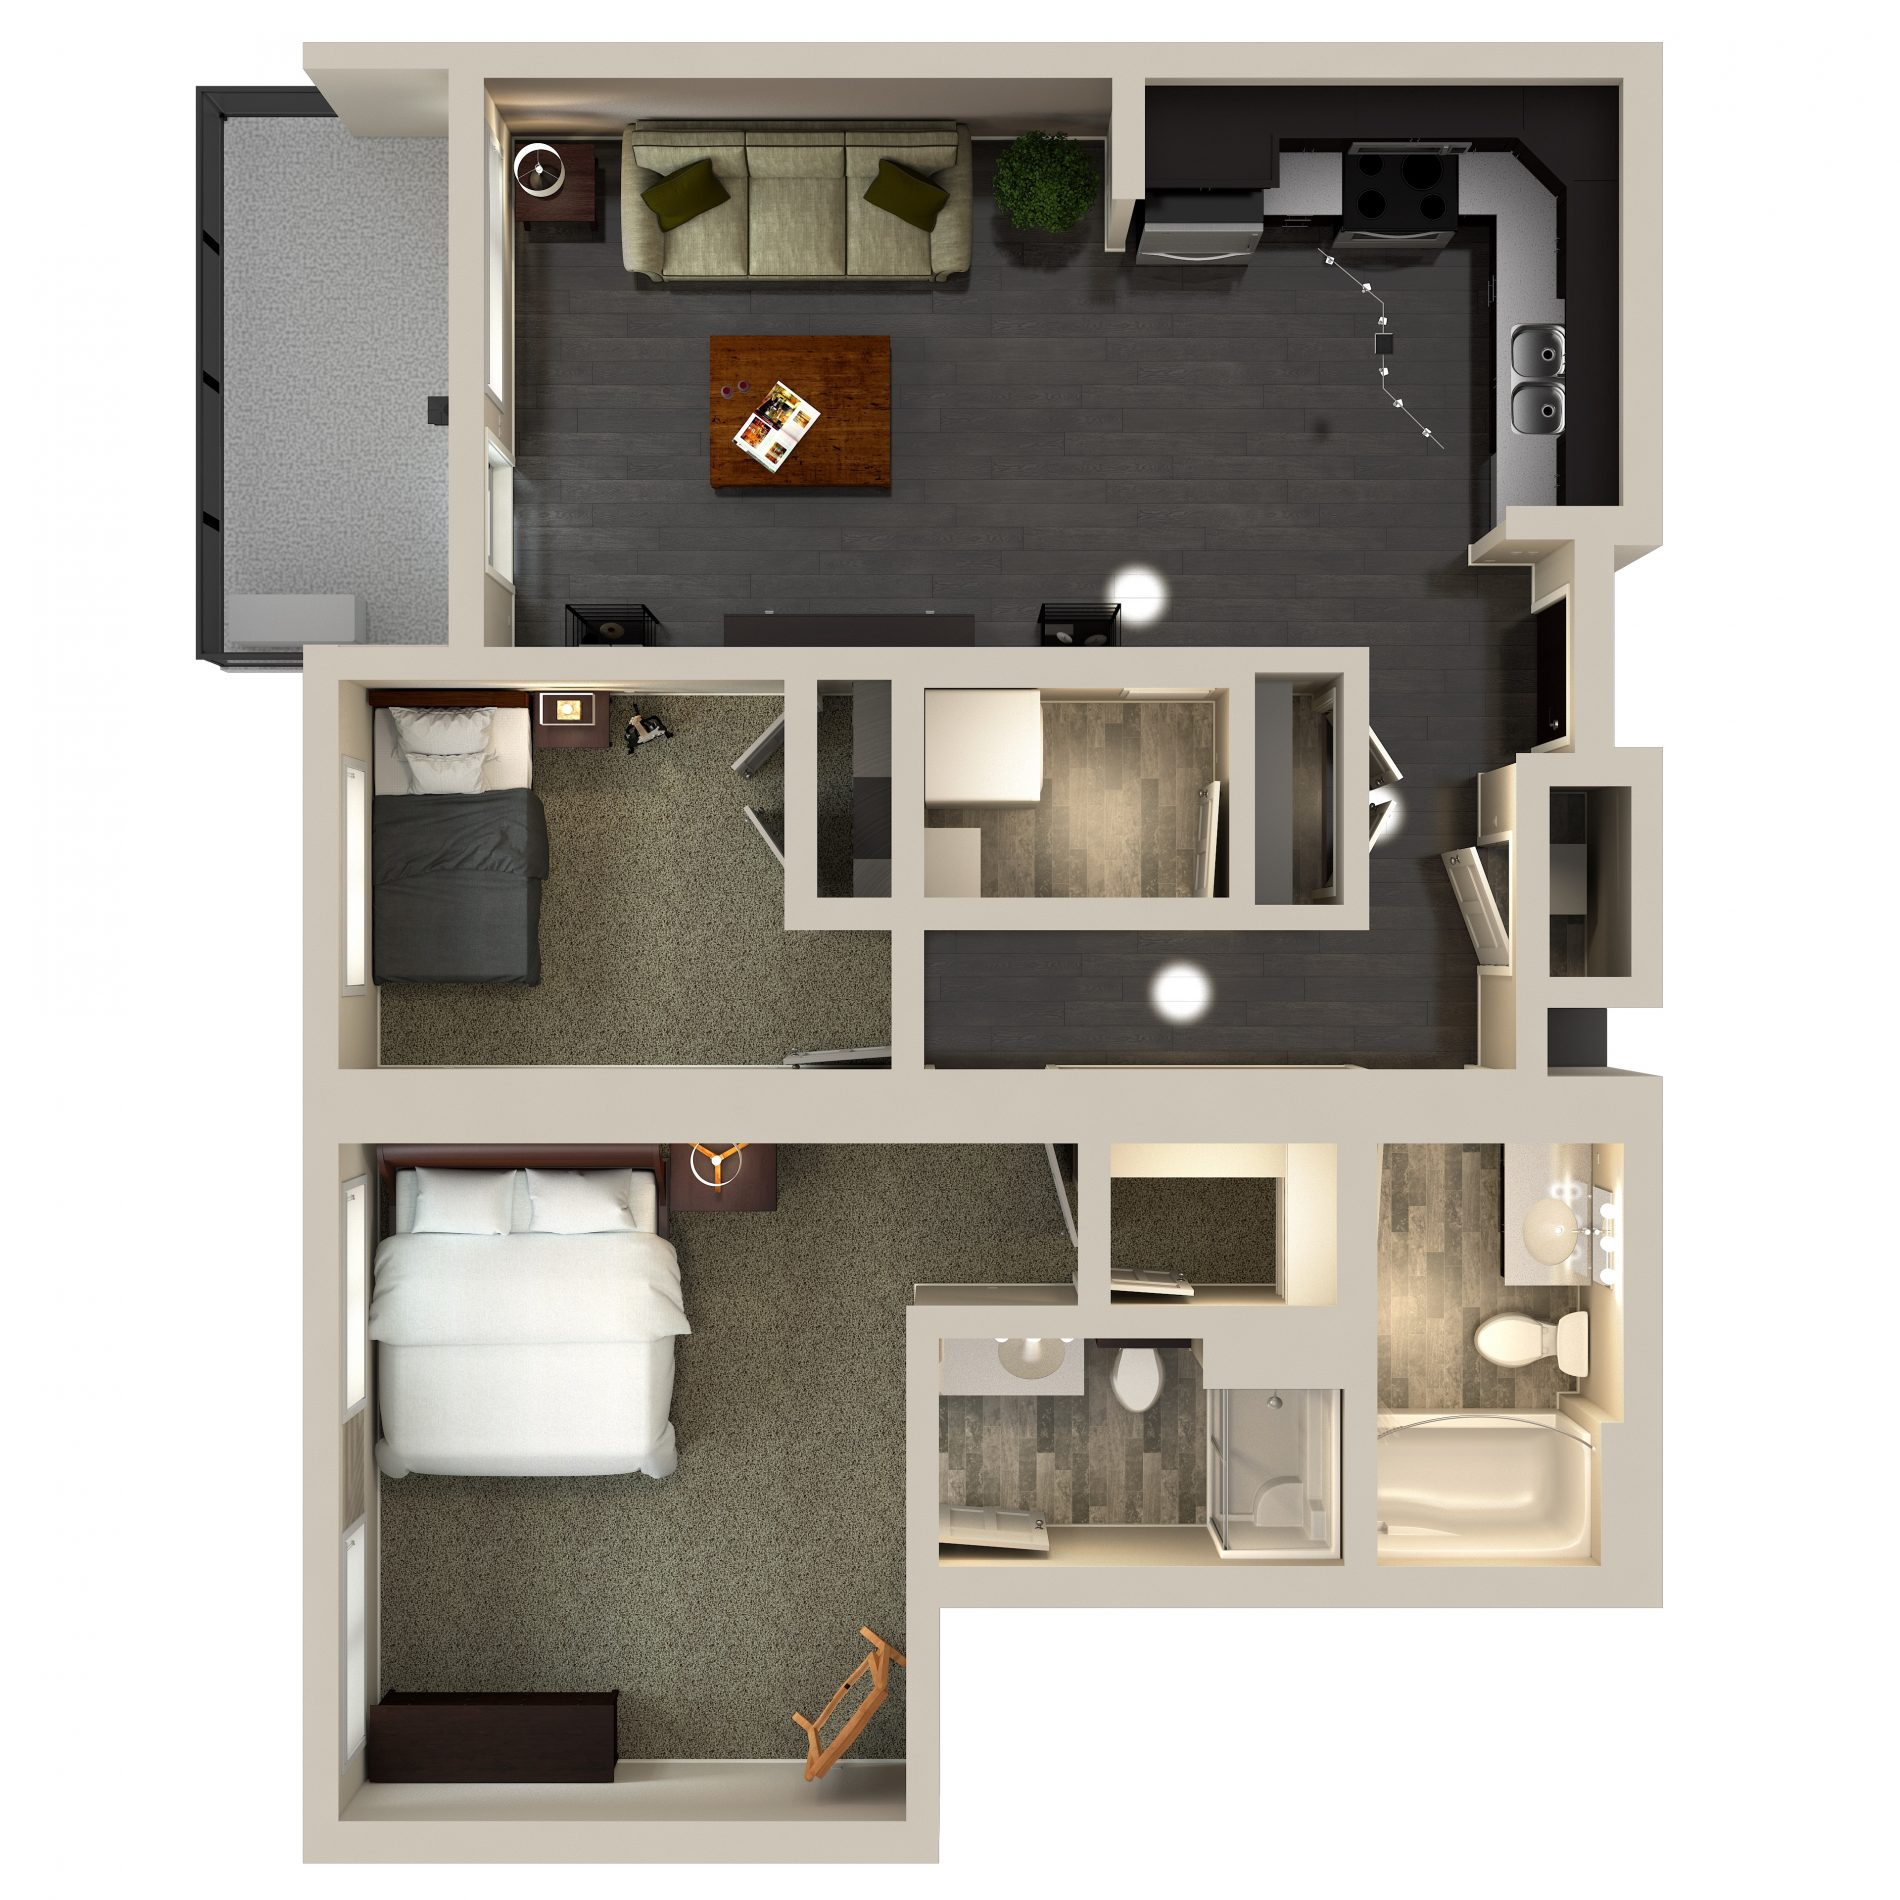 Urban Flats 2 Bedroom Condo Nova Floor Plan: 924 sq. ft.  plan